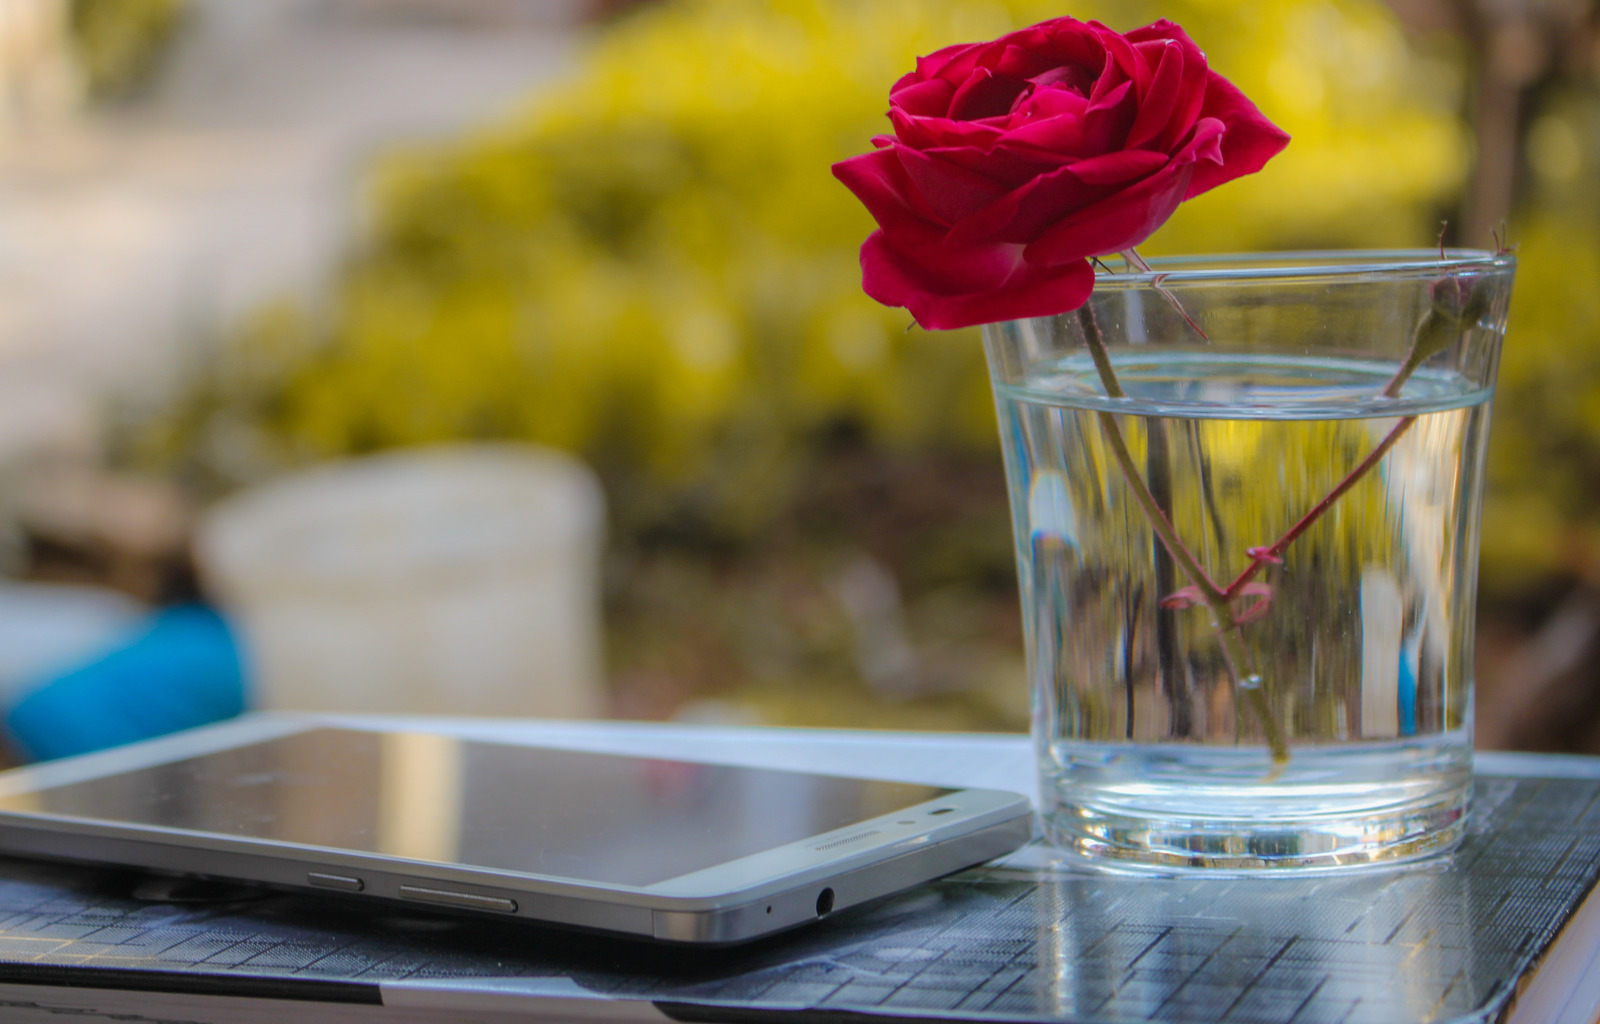 Canva - Red Rose In Clear Drinking Glass With Water Beside White Smartphone